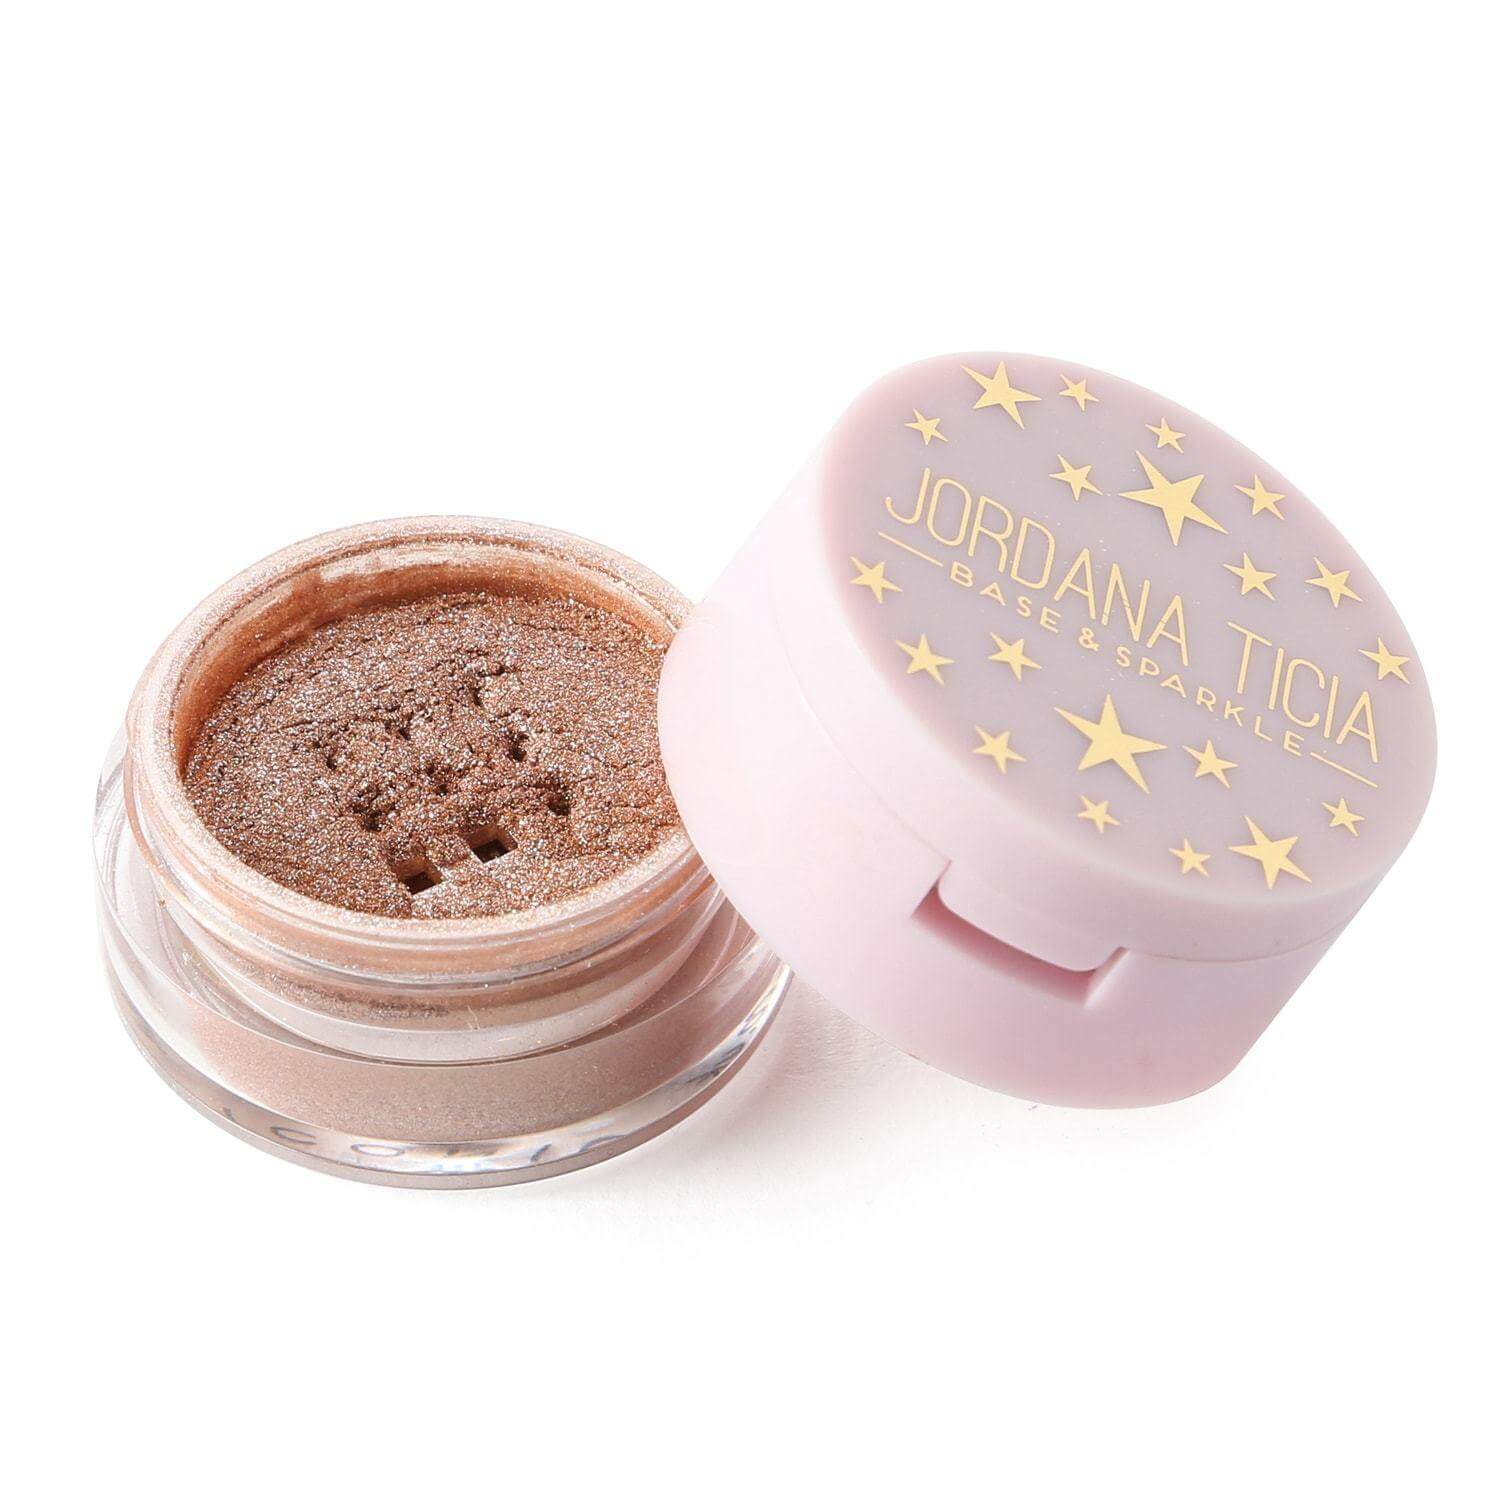 JORDANA TICIA-Jordana Ticia Base & Sparkle - Iconic-Beauty Gold